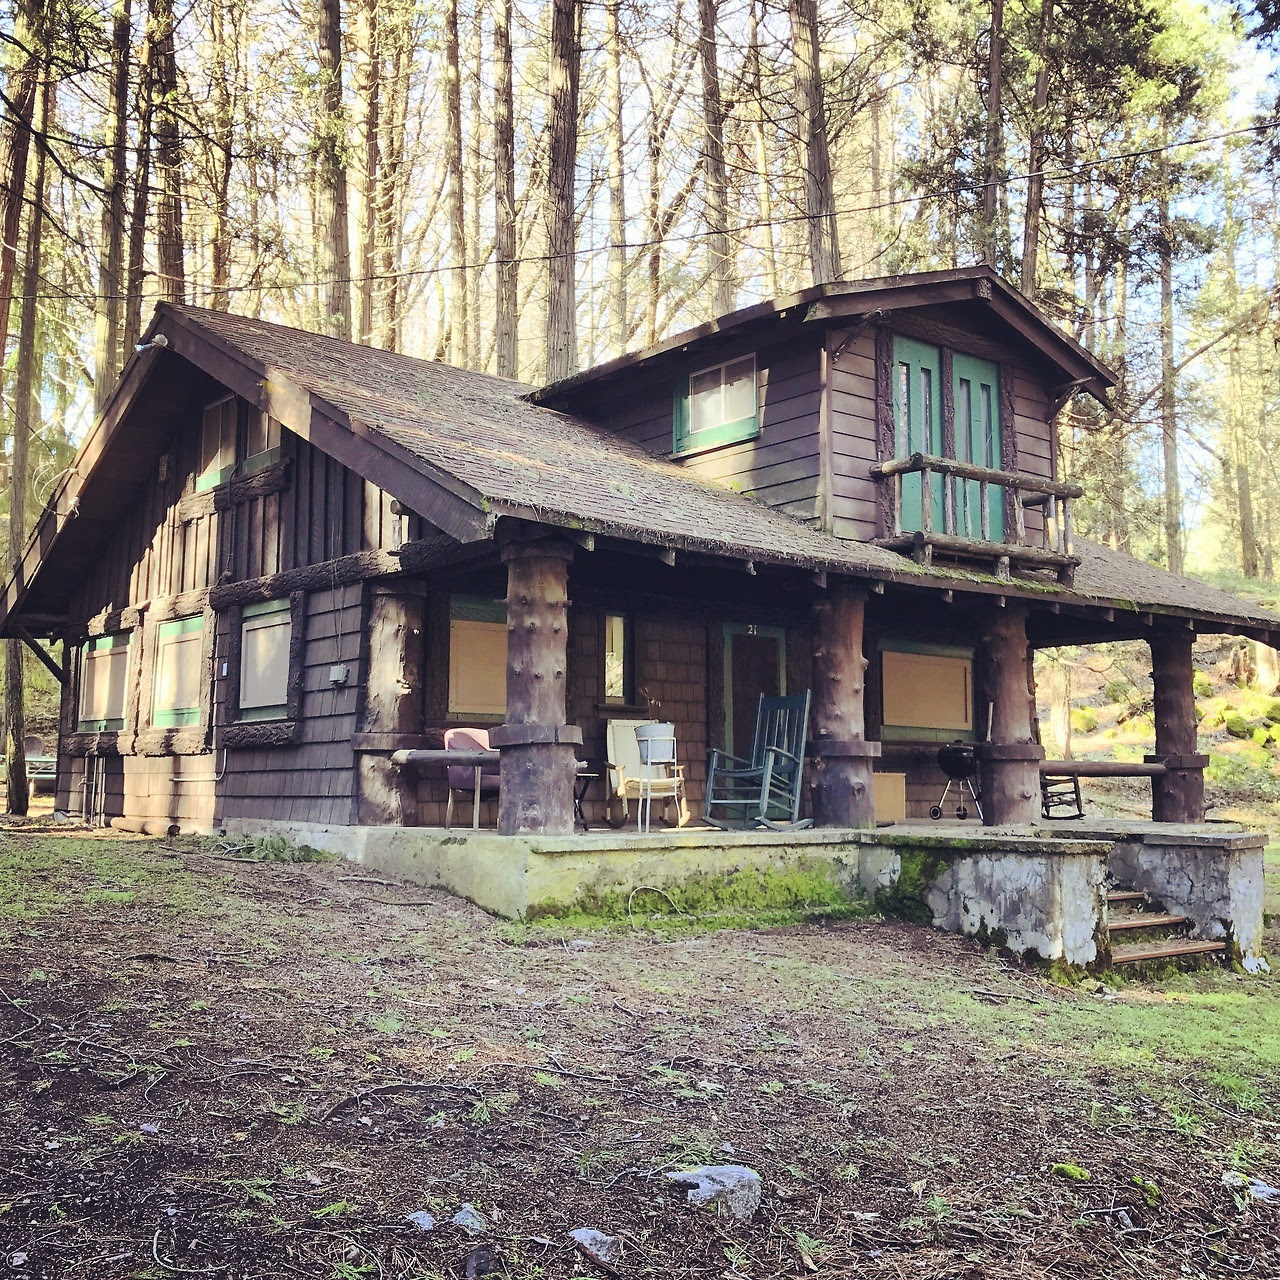 "Submitted by Tom Schmidt ""Our 1895 Cabin, recently purchased and in need of repair, we are beginning to restore this California gem back to its original interior, hoping to match the charm of the exterior. This cabin was originally a hunting lodge..."